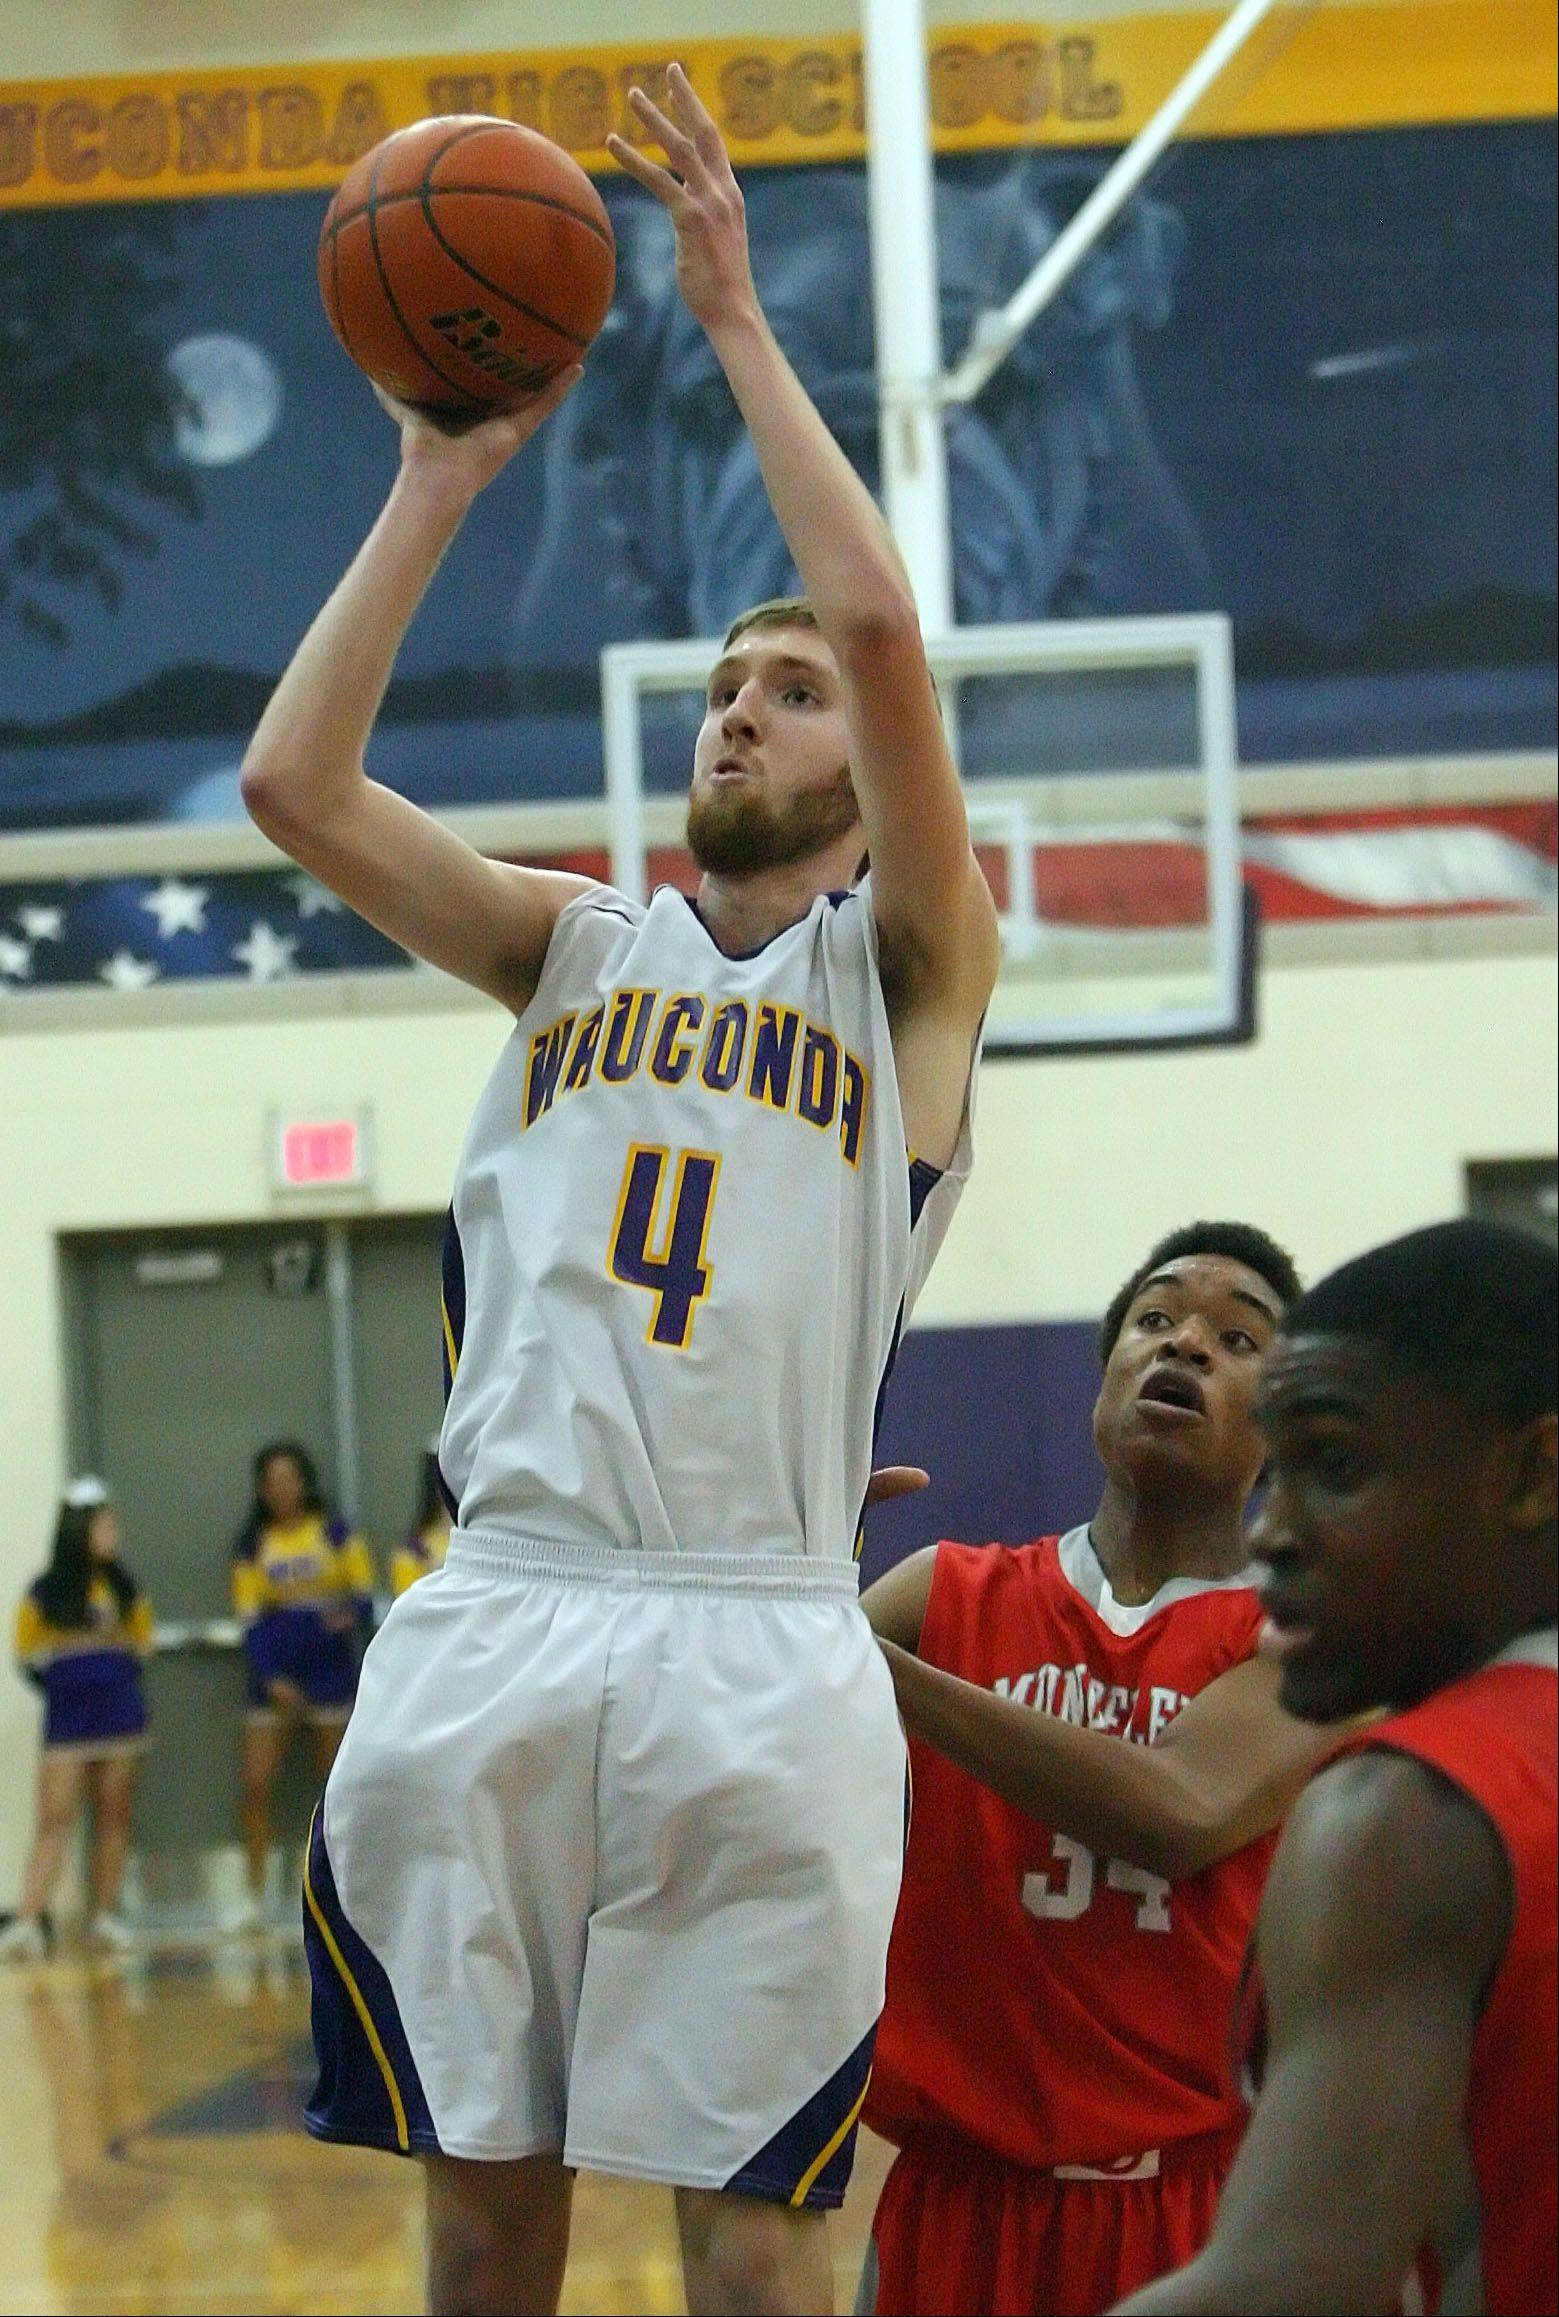 Wauconda's Ricky Sidlowski, left, shoots over Mundelein's Cliff Dunigan and Chino Ebube on Wednesday night at Wauconda.